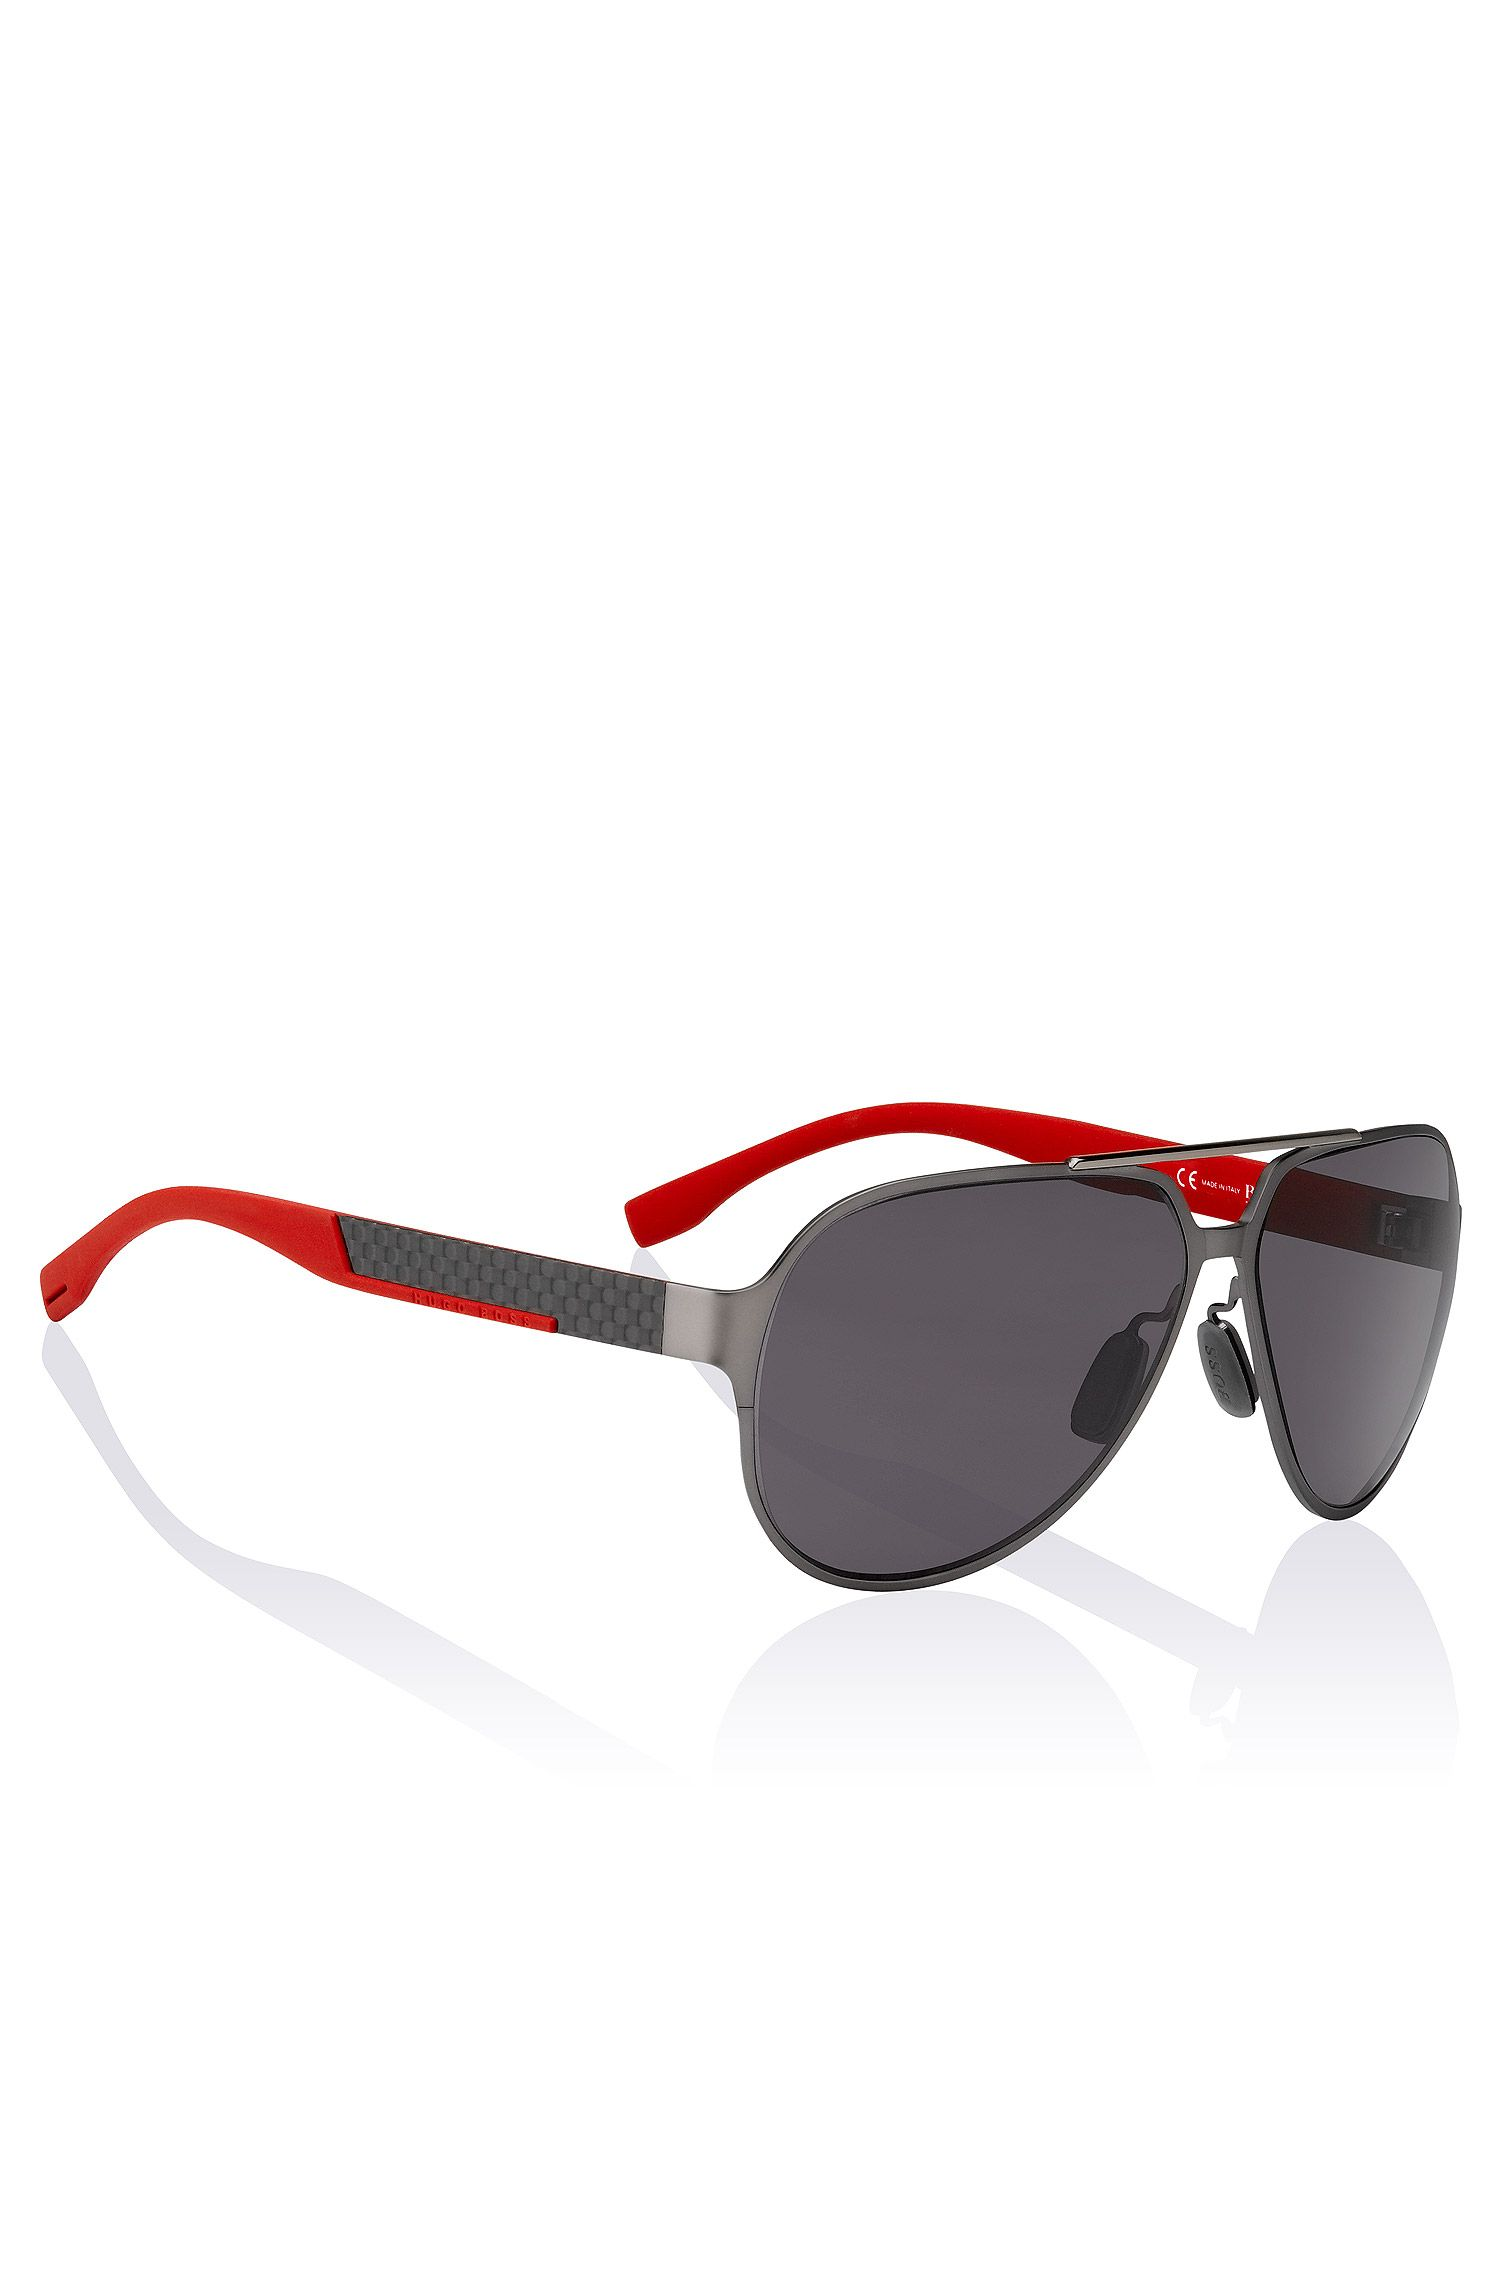 Pilot sunglasses 'BOSS 0669'